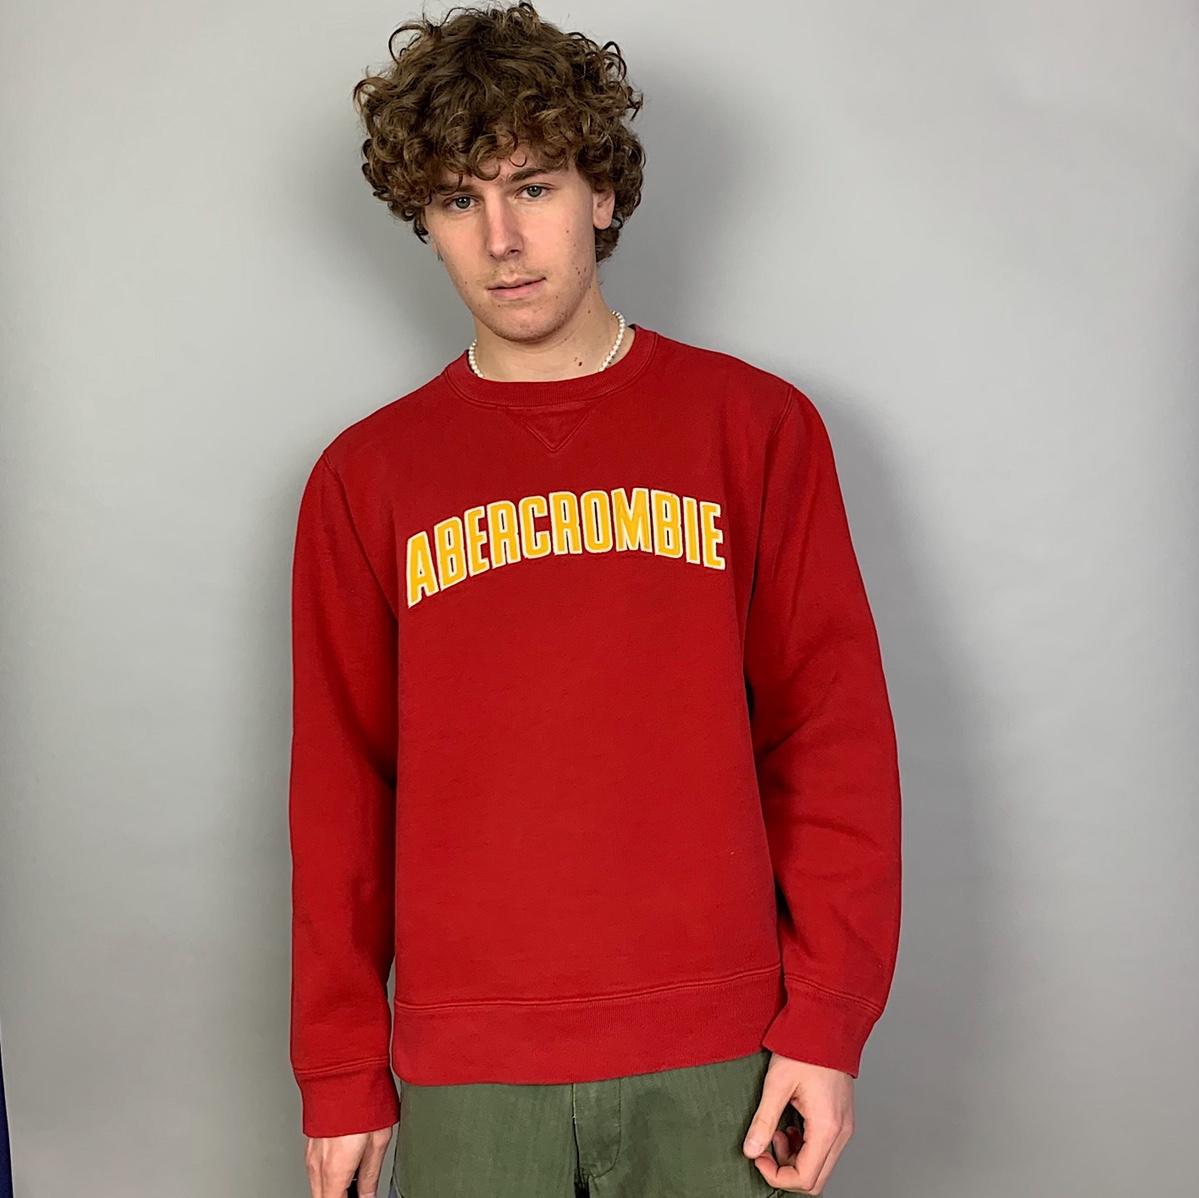 Product Image 1 - Abercrombie red crewneck size xl